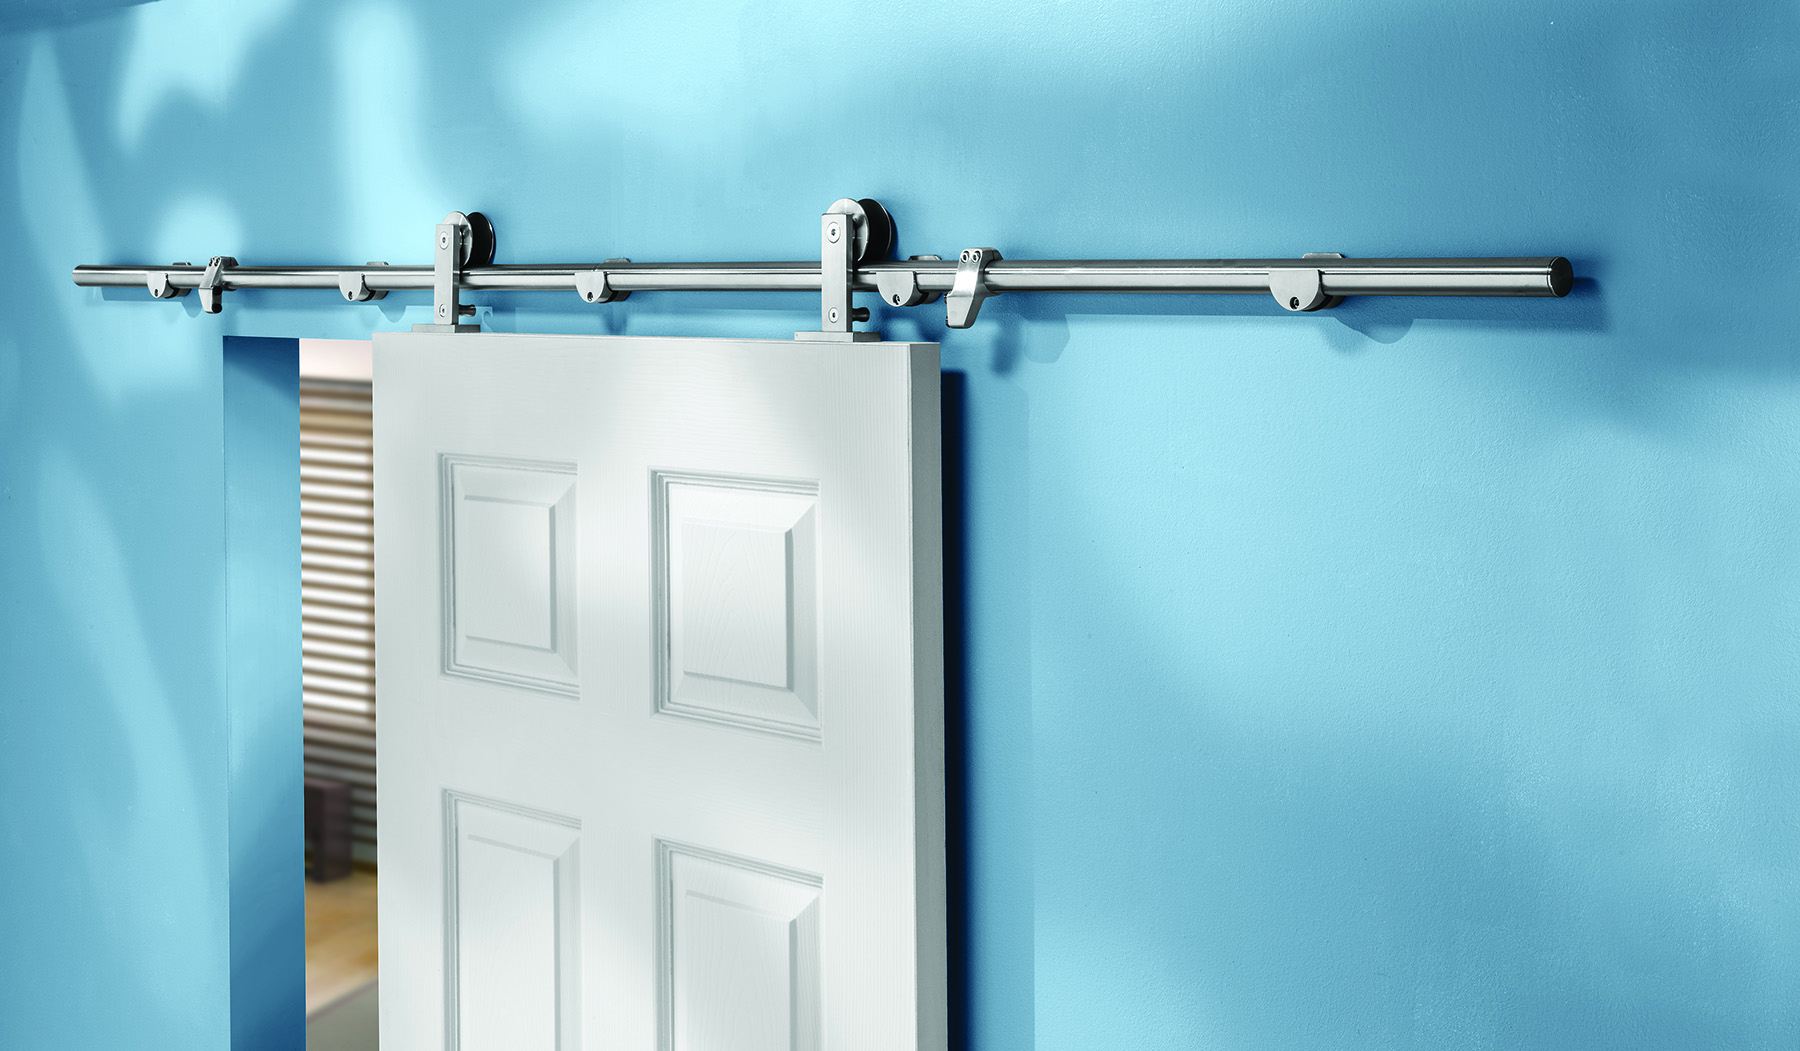 rockler expands selection of rolling barn door hardware at lower